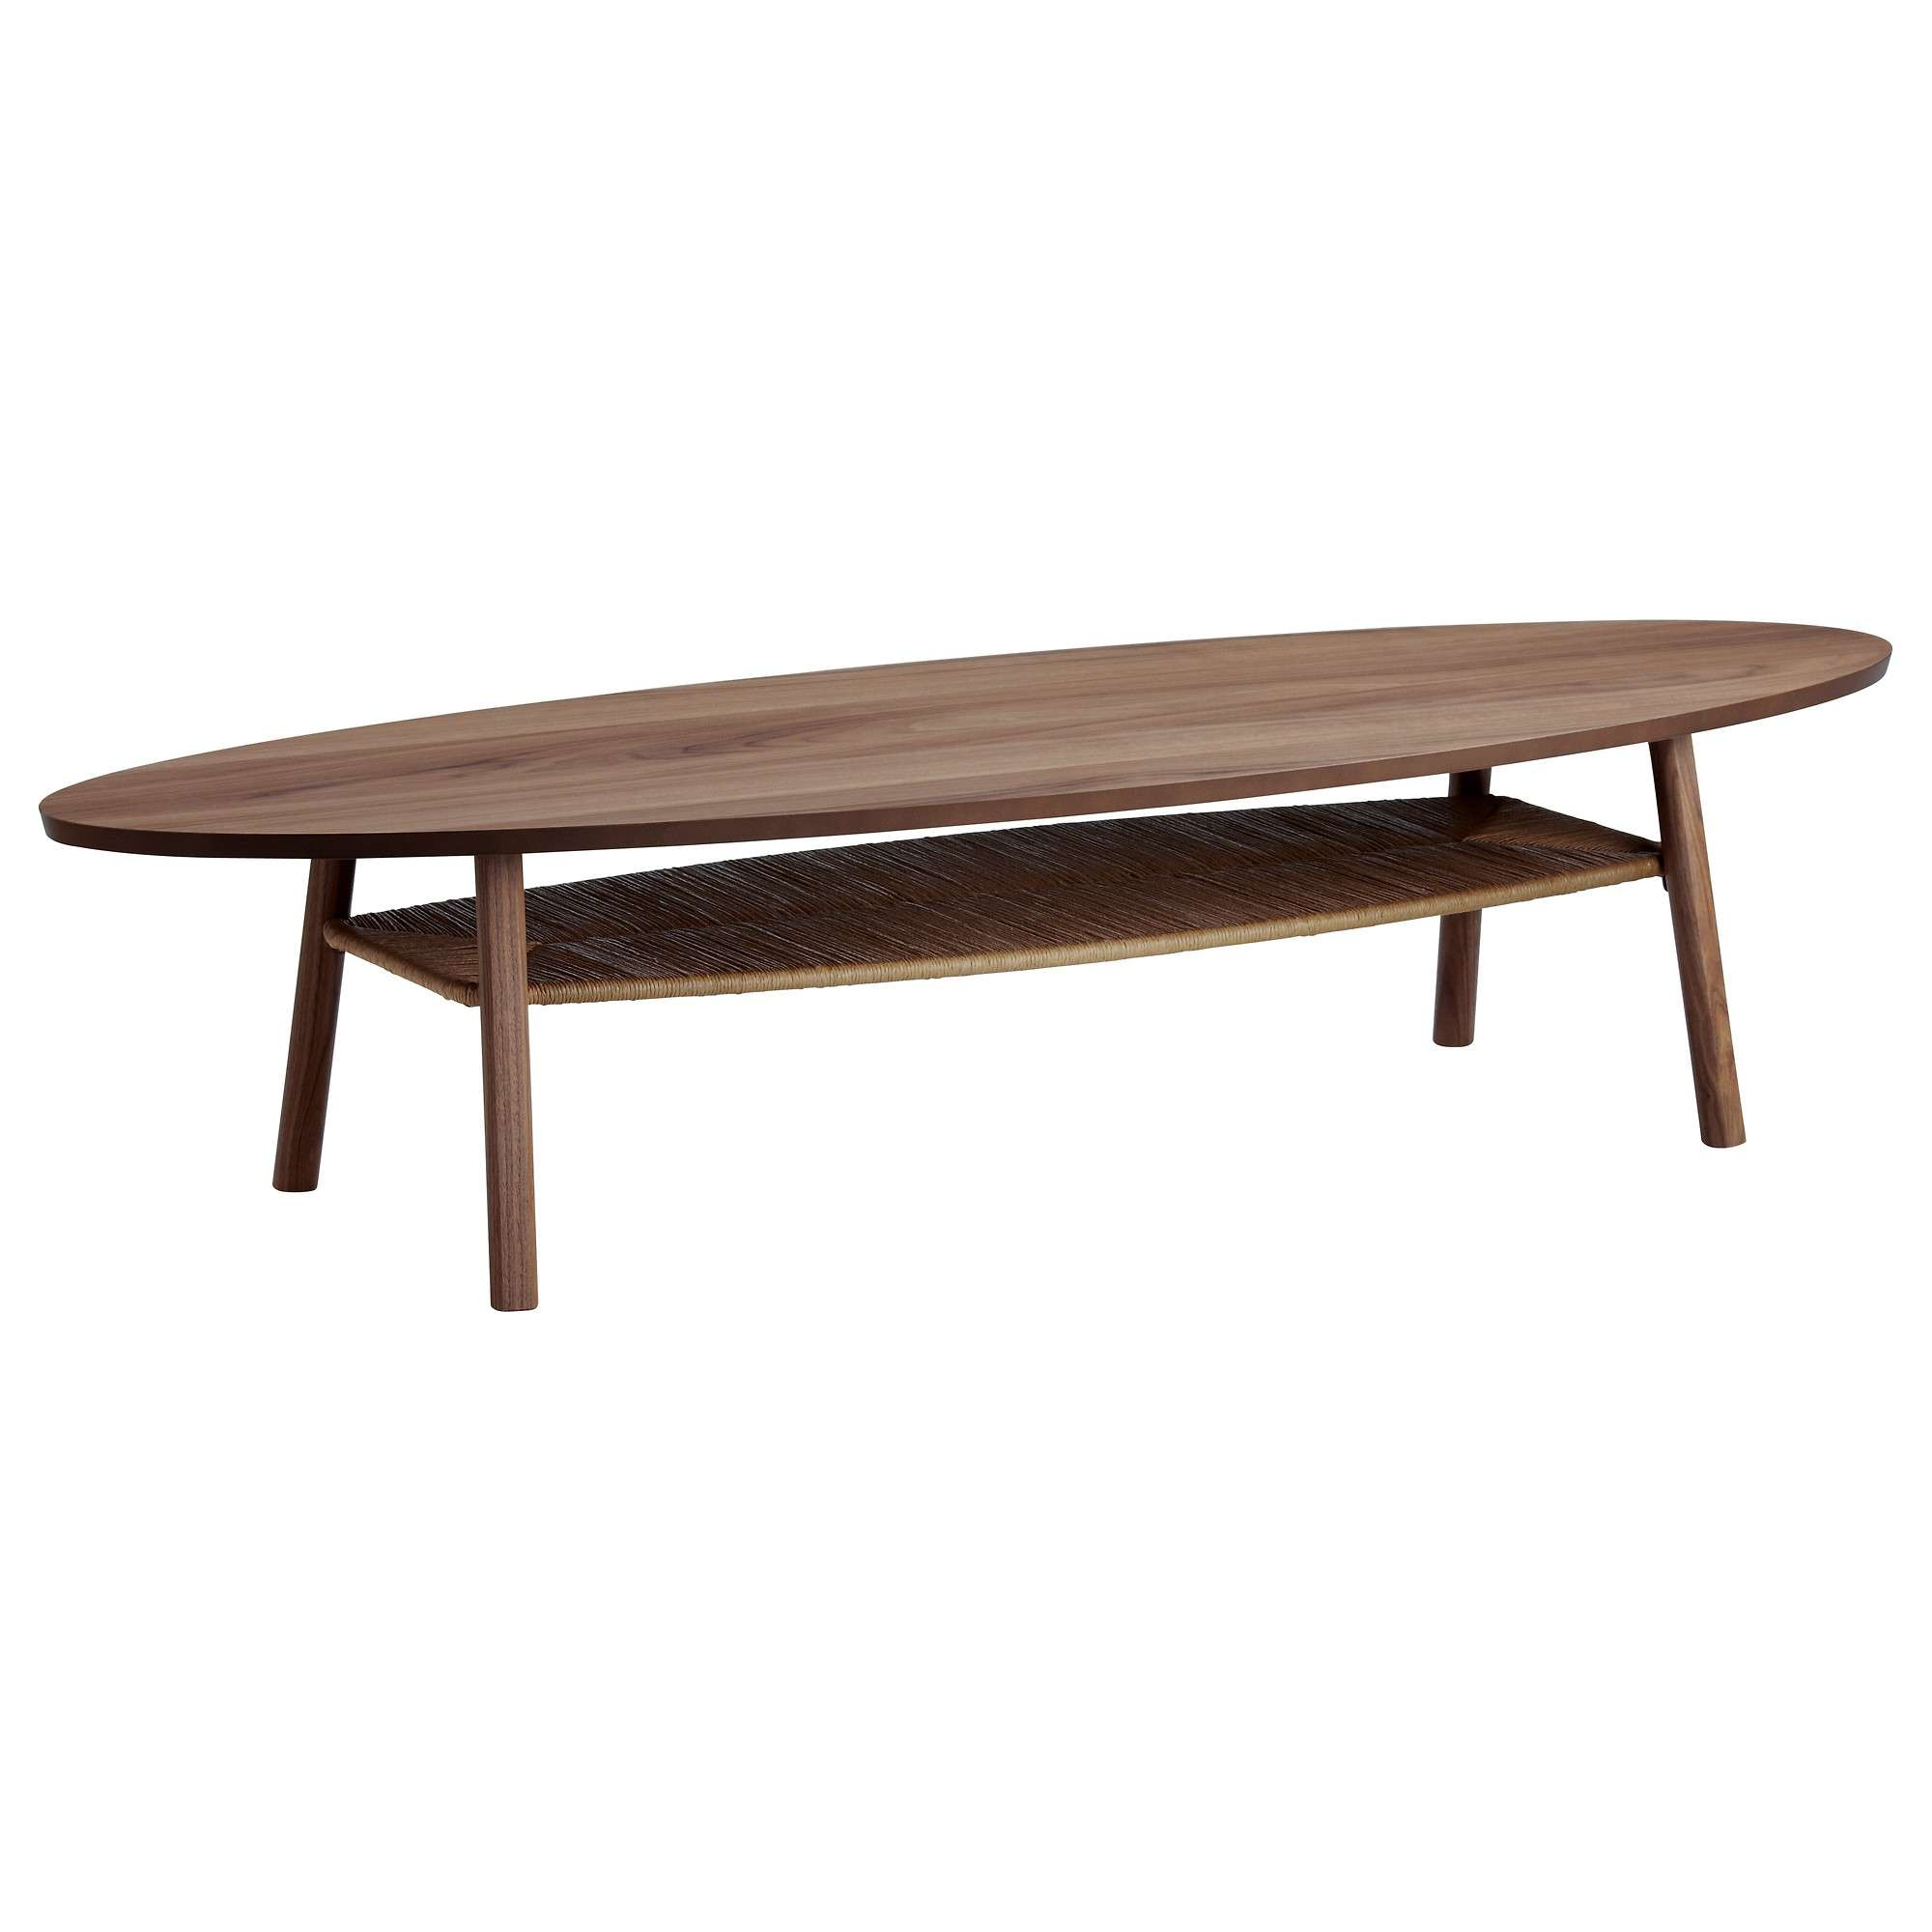 "Current Oval Walnut Coffee Tables Pertaining To Stockholm Coffee Table – Walnut Veneer, 70 7/8X23 1/4 "" – Ikea (View 5 of 20)"